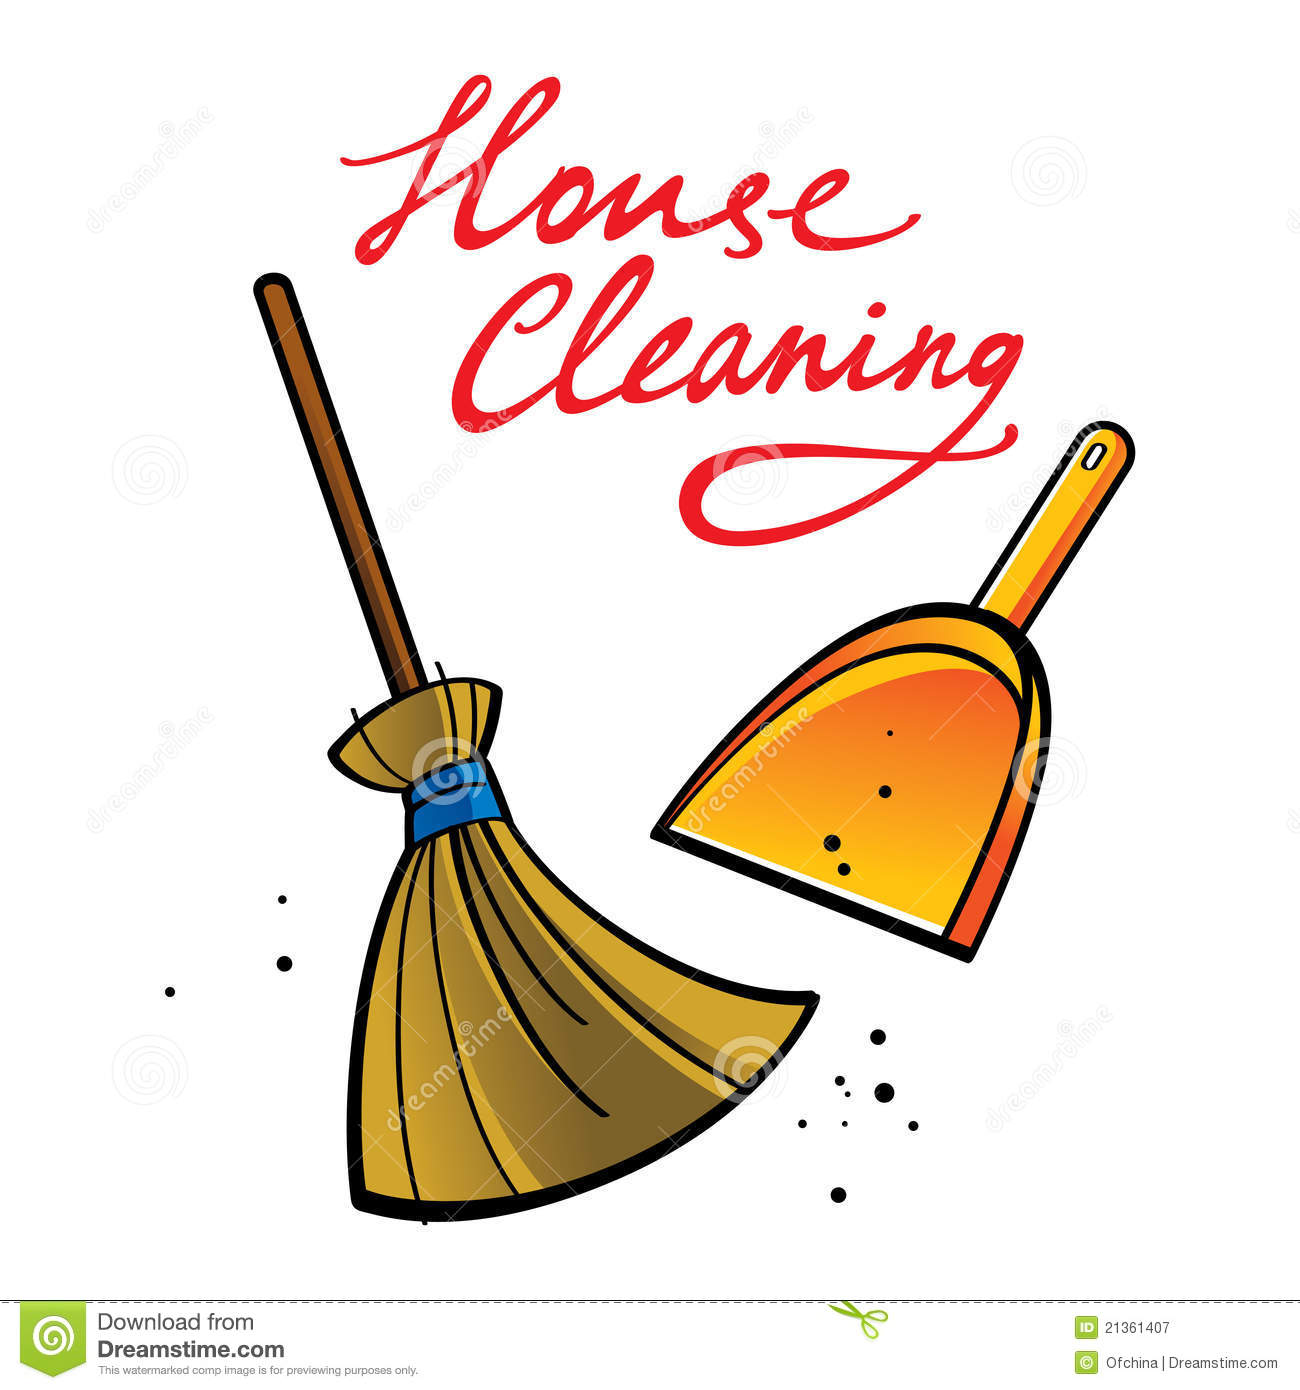 office cleaning clipart clipart kid cleaning clipart microsoft clipart bing picture house cleaning house